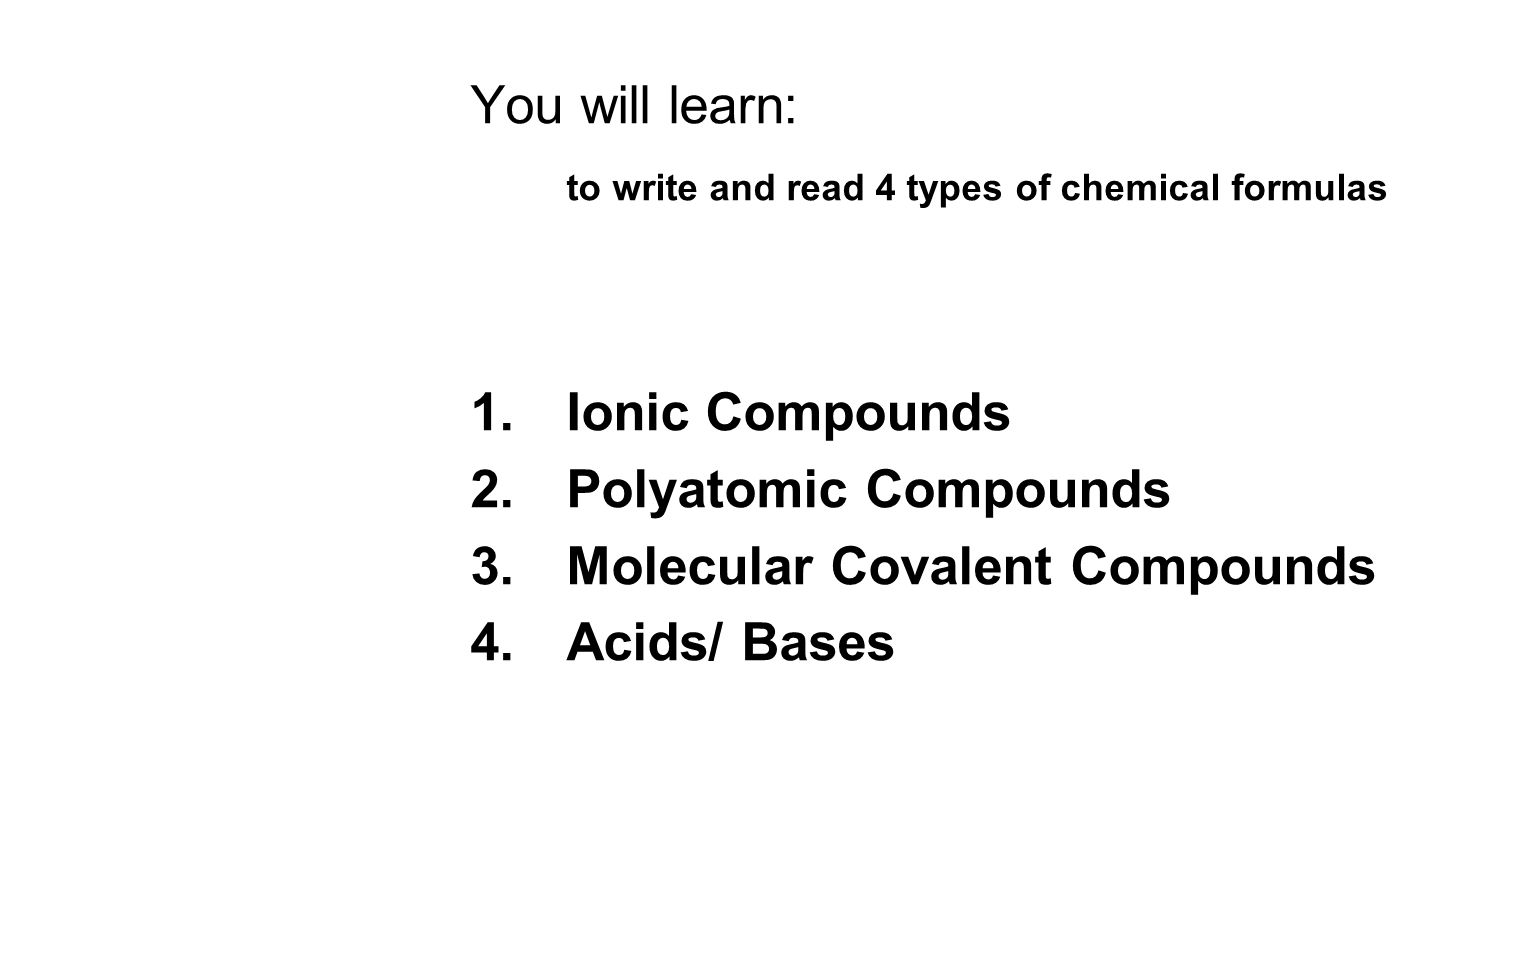 You Will Learn To Write And Read 4 Types Of Chemical Formulas